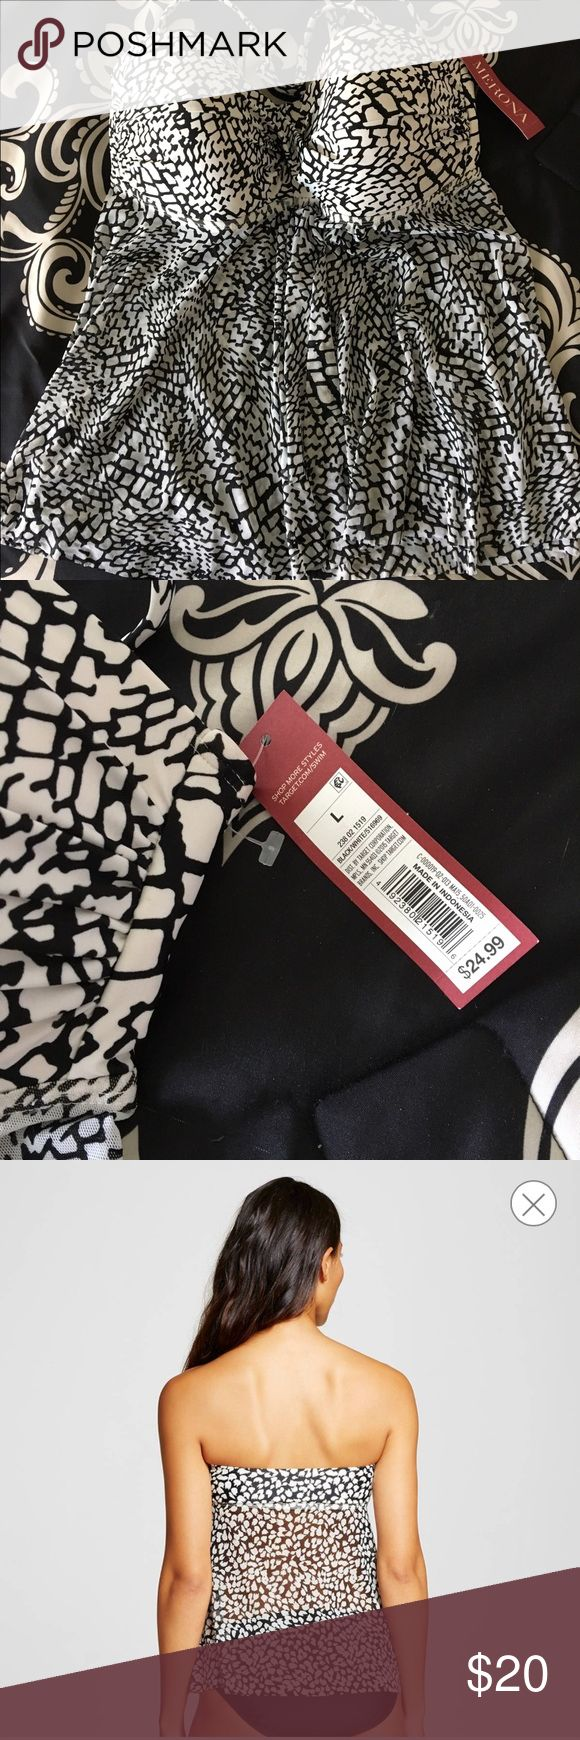 Merona women's L Flyaway Tankini NWT Brand new with tags, Merona Women's black and white flyaway tankini top from Target. TOP ONLY. Detachable straps, moulded cups. Size Large. Merona Swim